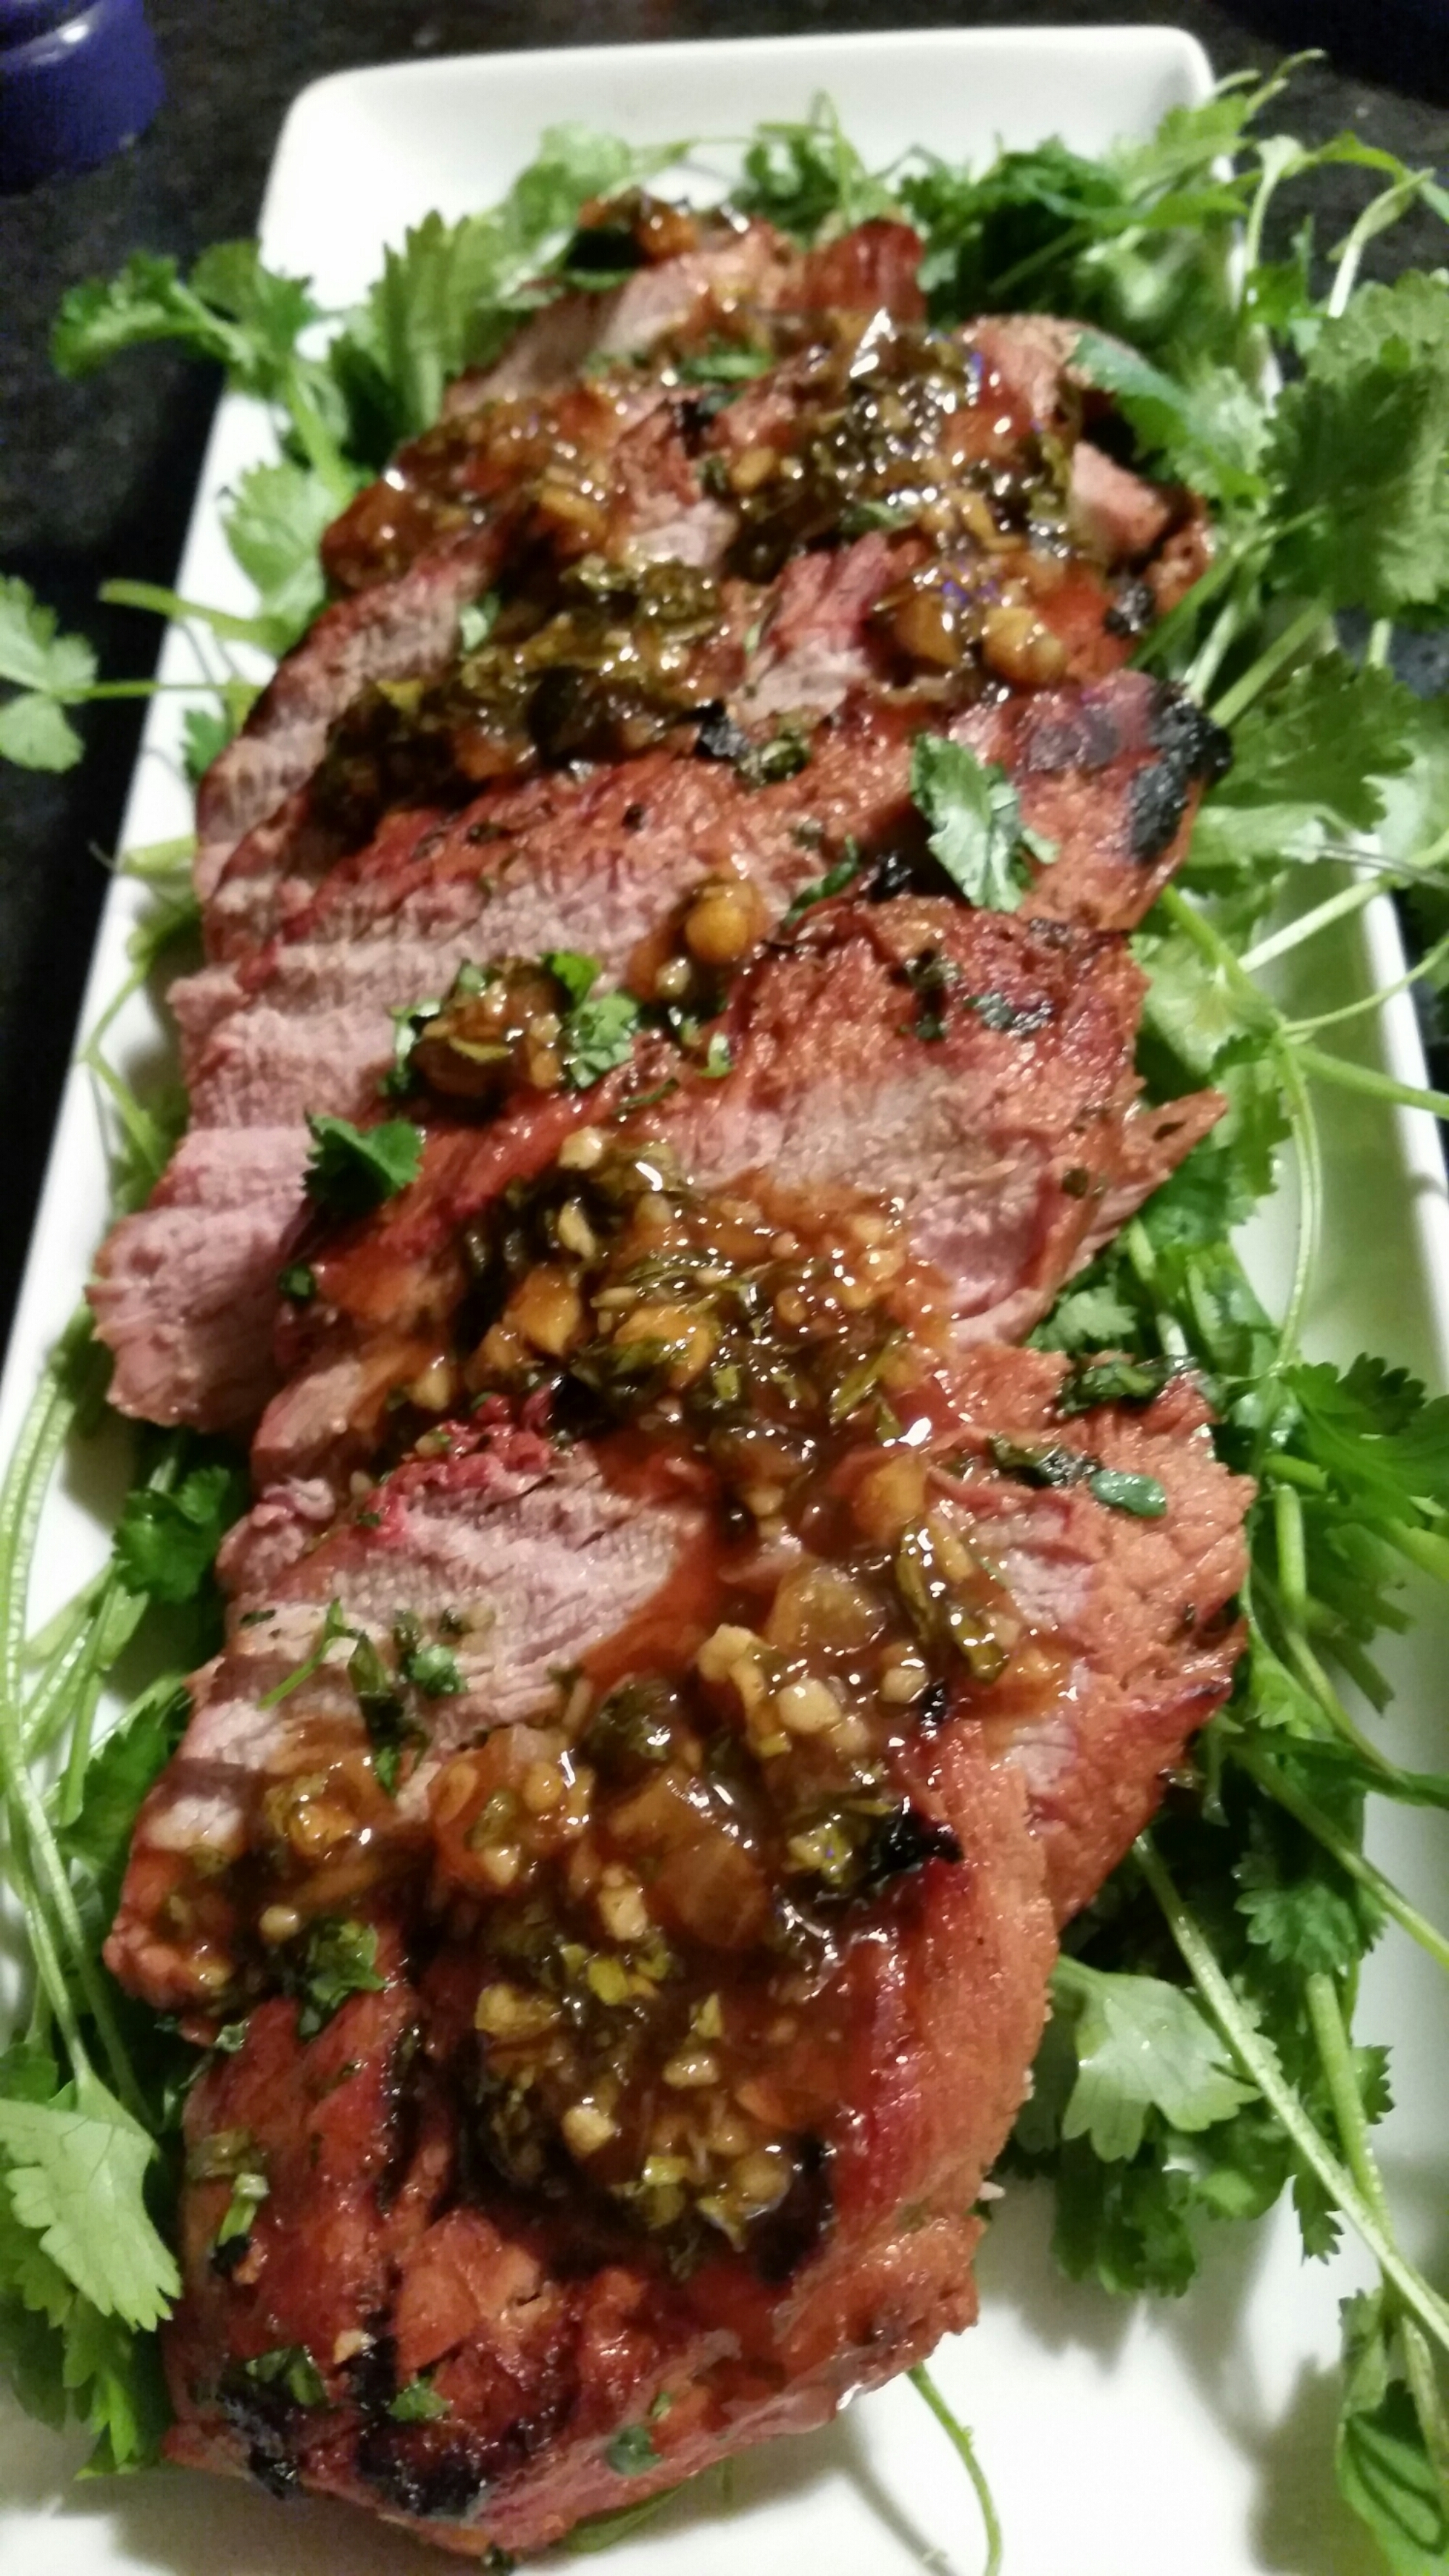 Grilled Pork Tenderloin with Honey-Lime Marinade